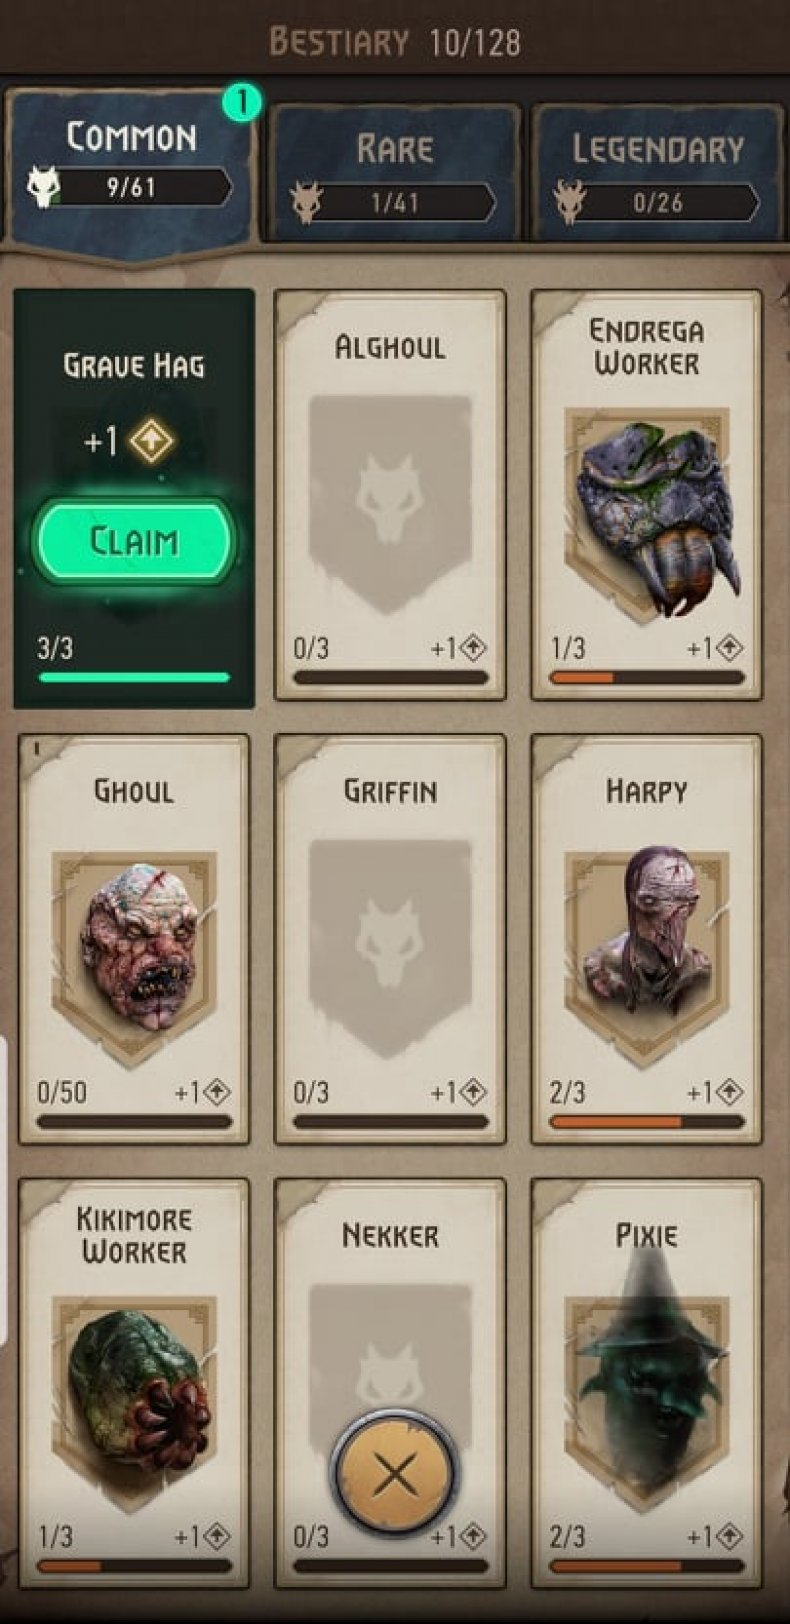 The Witcher: Monster Slayer Bestiary Rewards